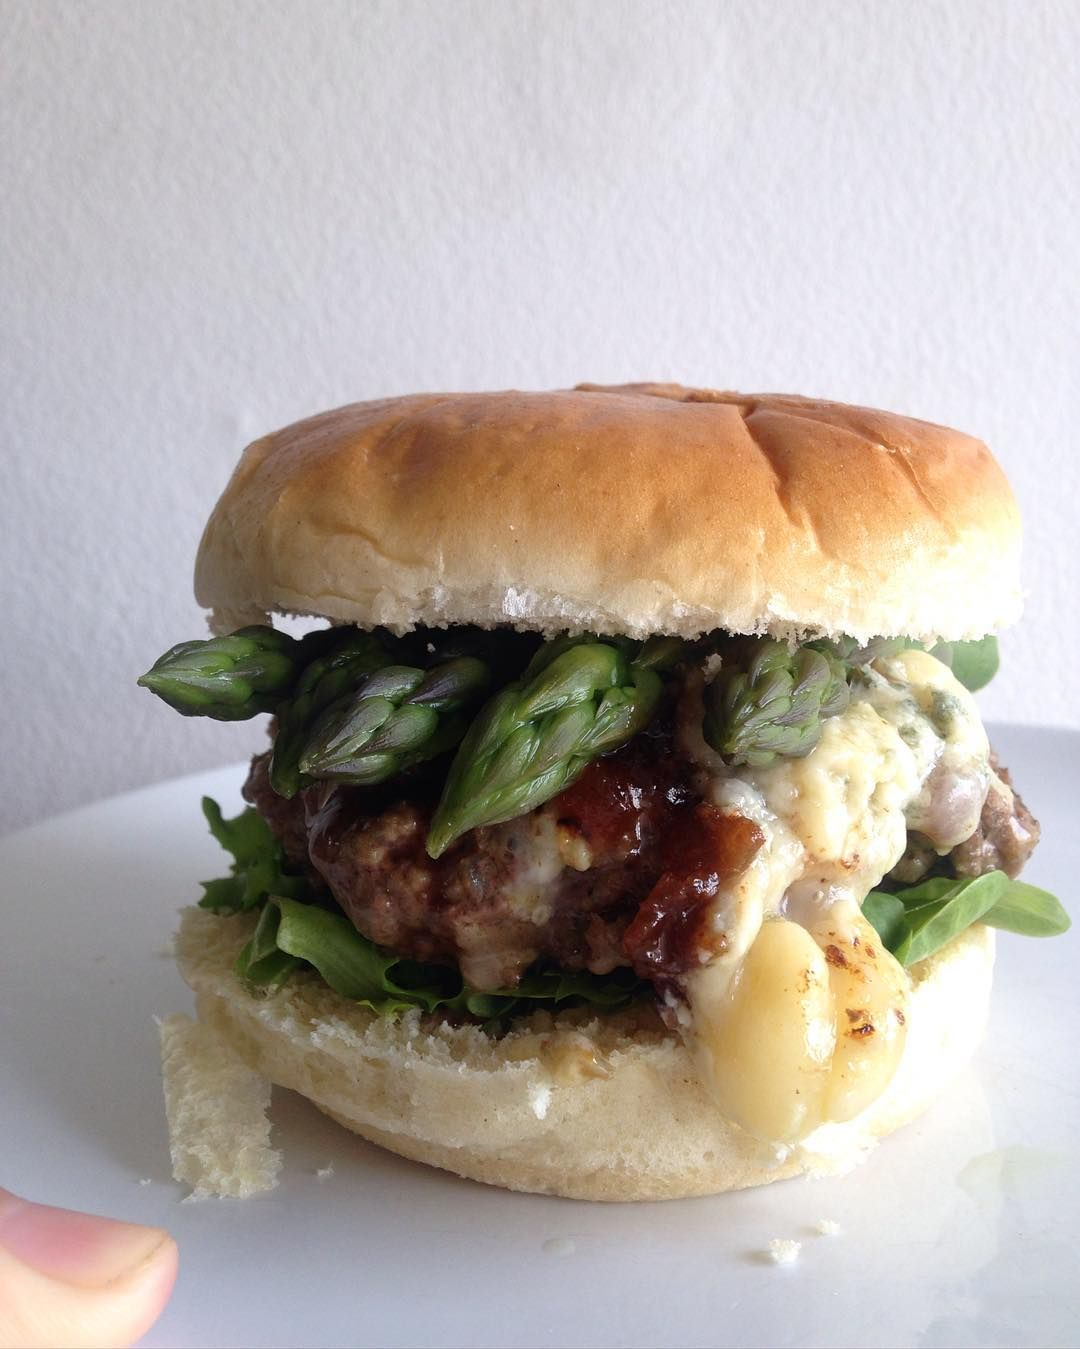 Oh HI late spring burger - British asparagus apple chutney and blue cheese. After a long walk you are most welcome.